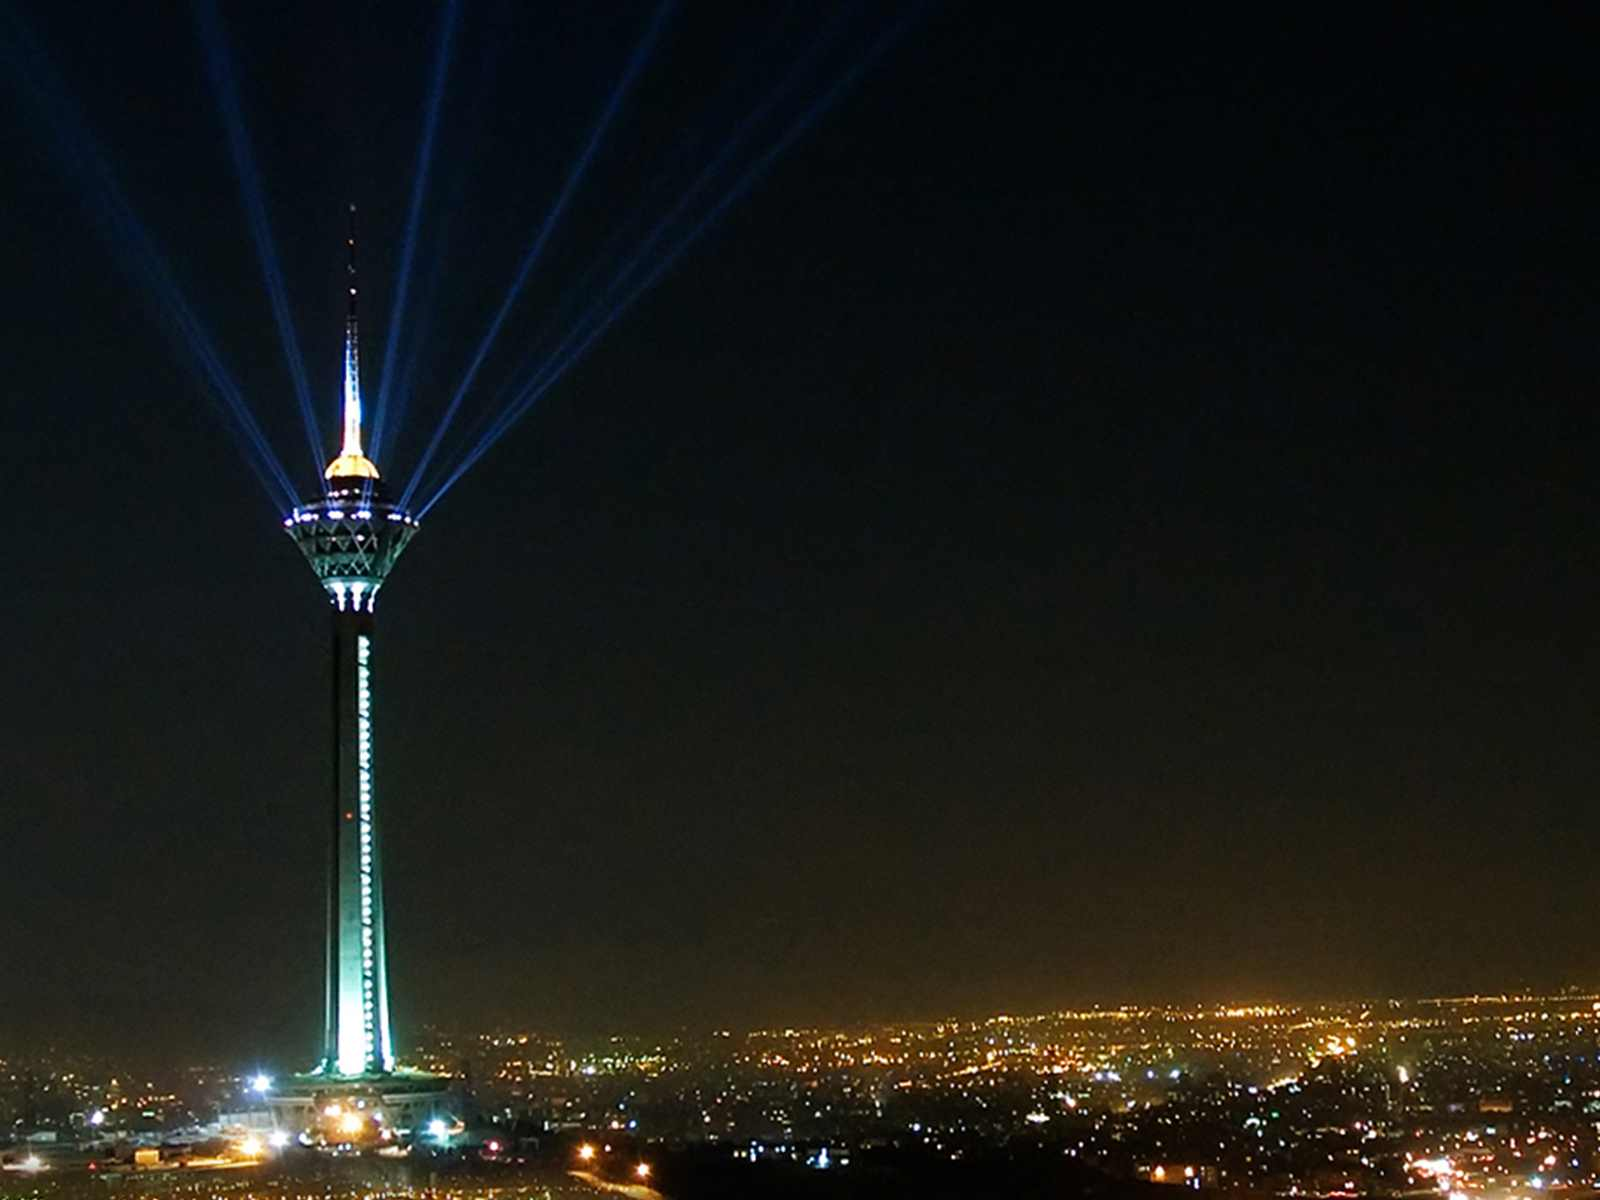 Milad Tower is the tallest tower in the northwest of Tehran, the capital of Iran.